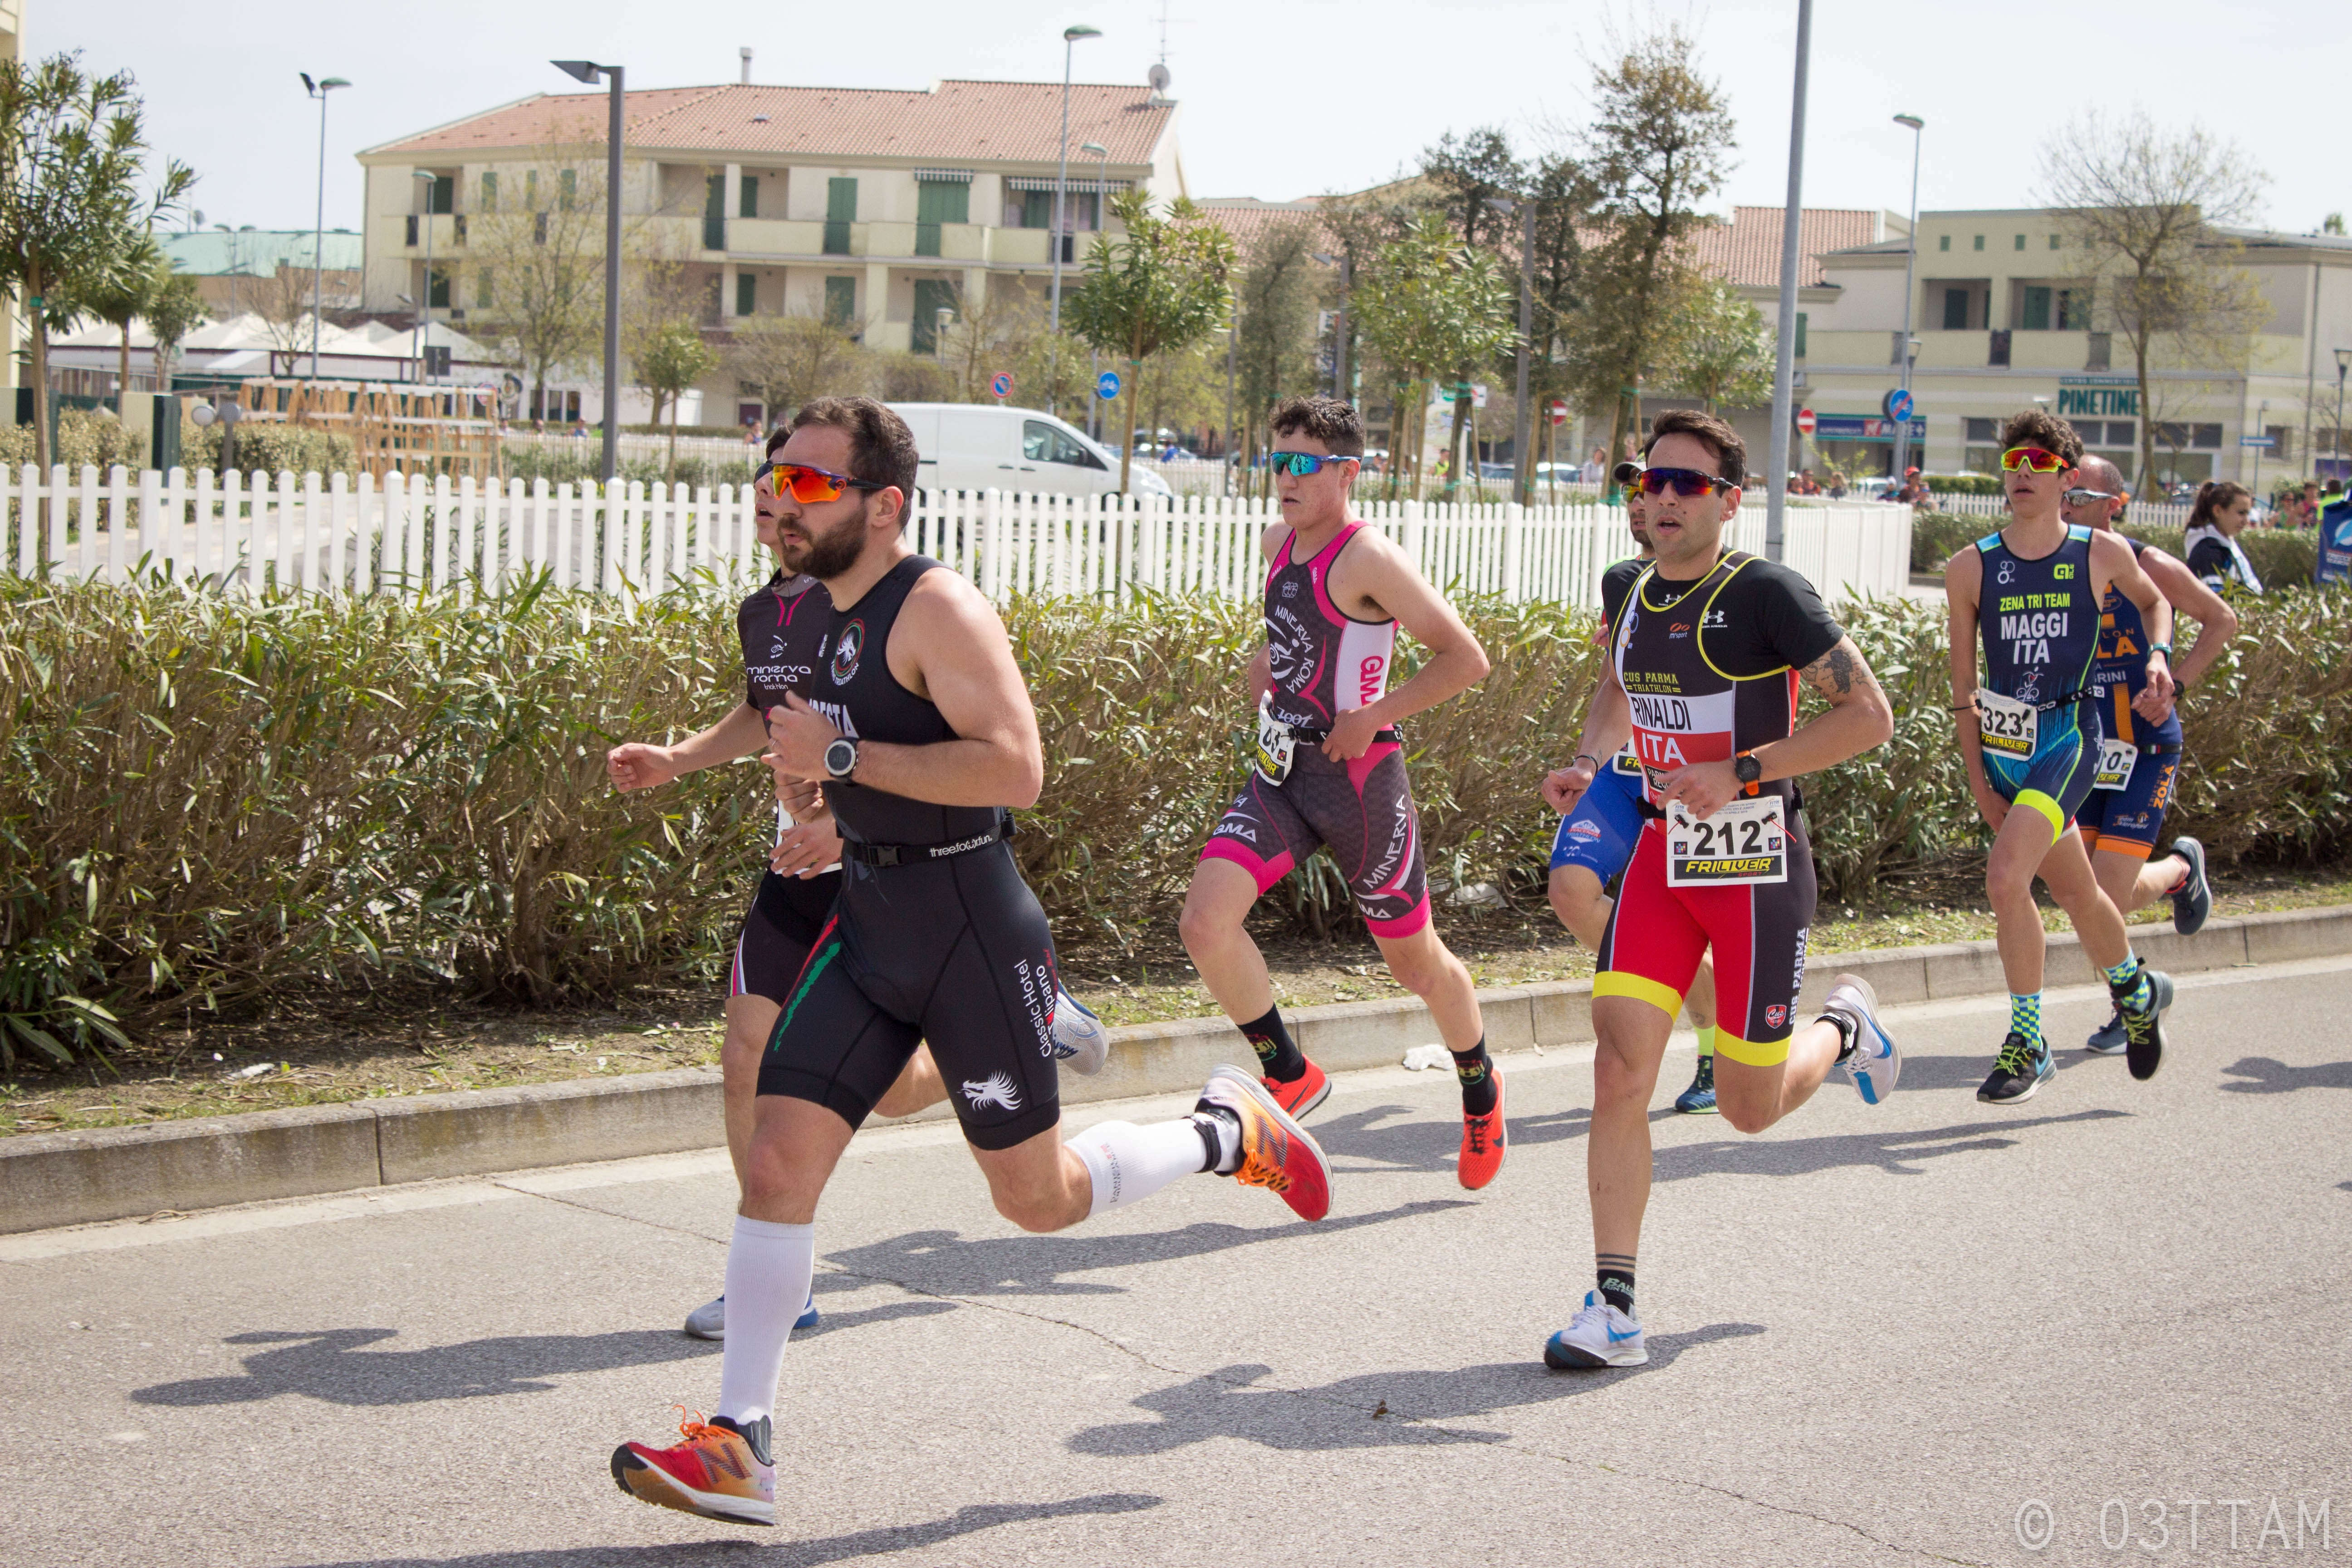 Calendario 2019 Triatlon Más Actual Triathlon – Cus Parma A S D Of Calendario 2019 Triatlon Más Actual Triathlon – Cus Parma A S D